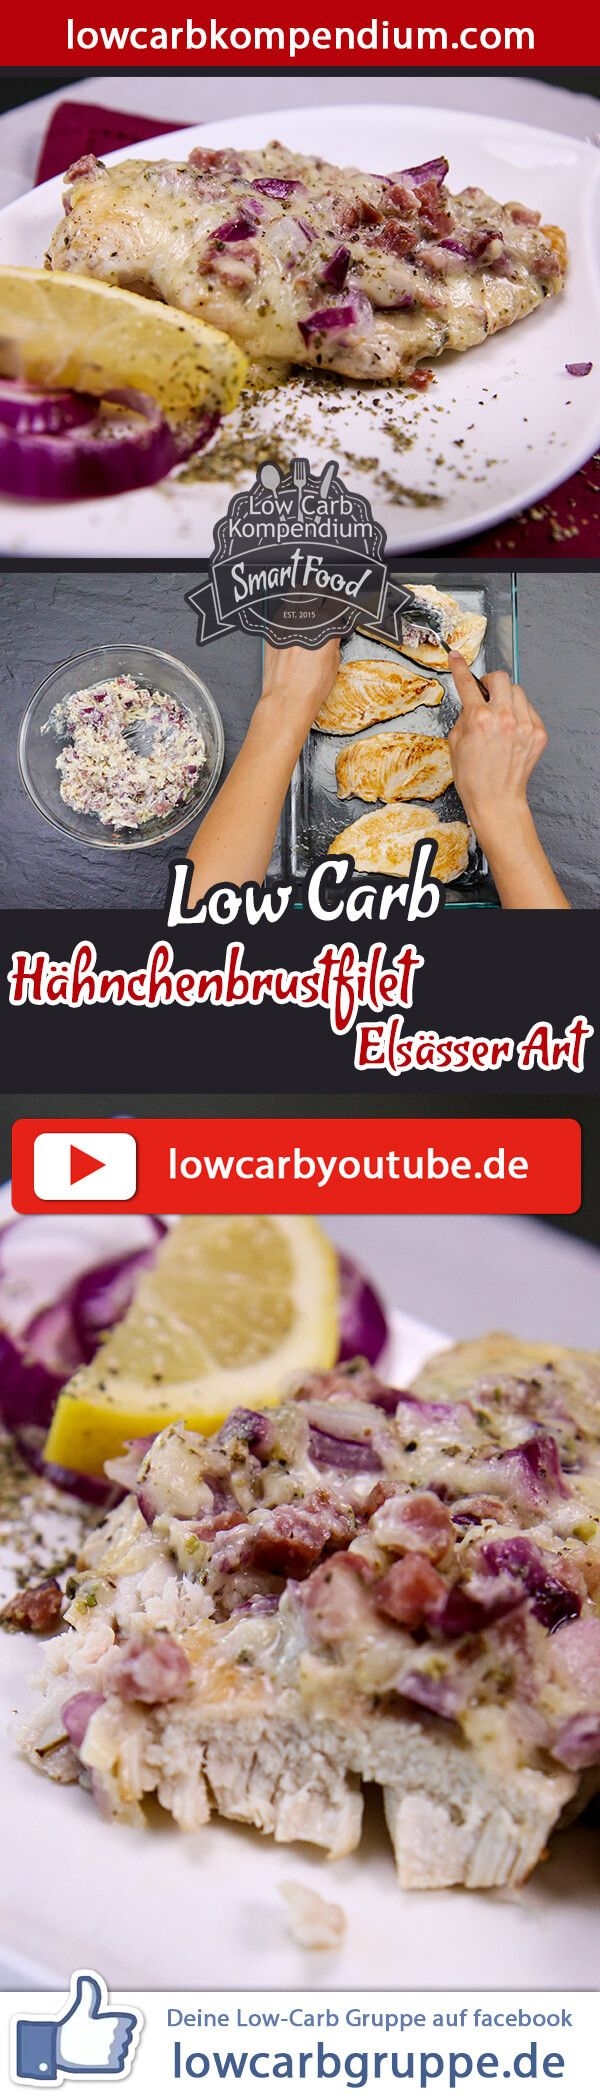 Photo of Chicken breast fillet Alsatian style 😋 Low-carb oven dish simple & quick